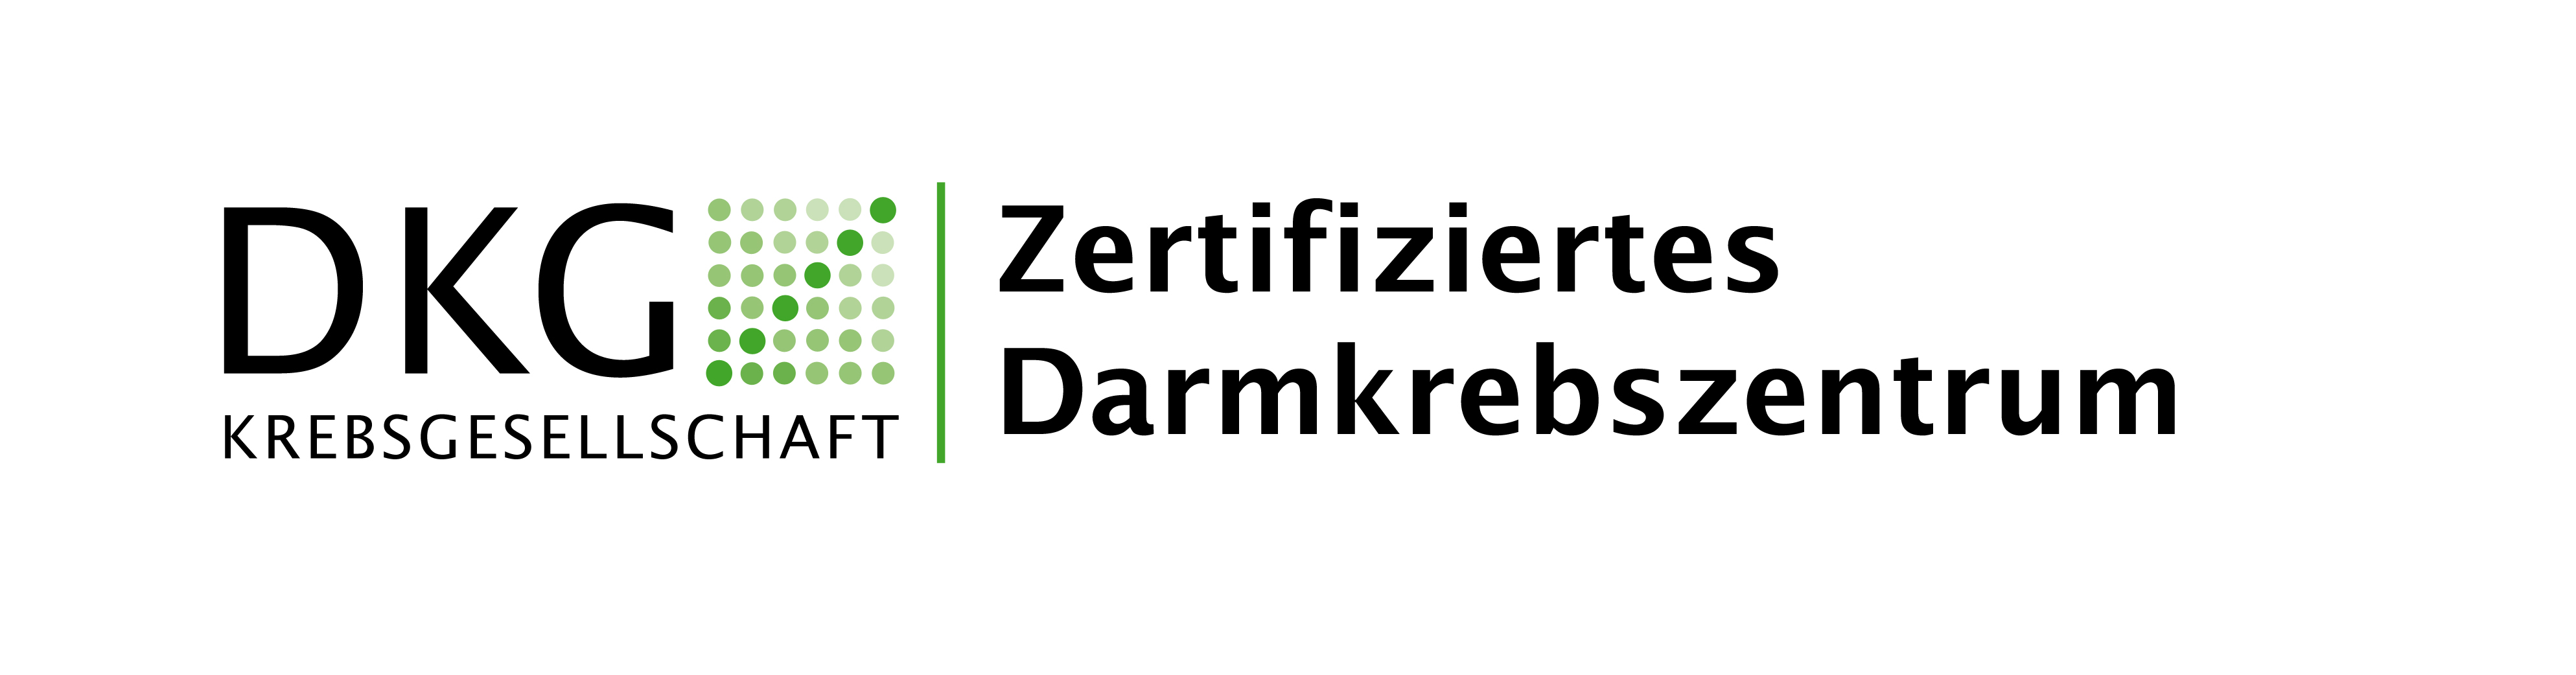 tl_files/images/logos/Logo_Darmkrebszentrum_var2.jpg